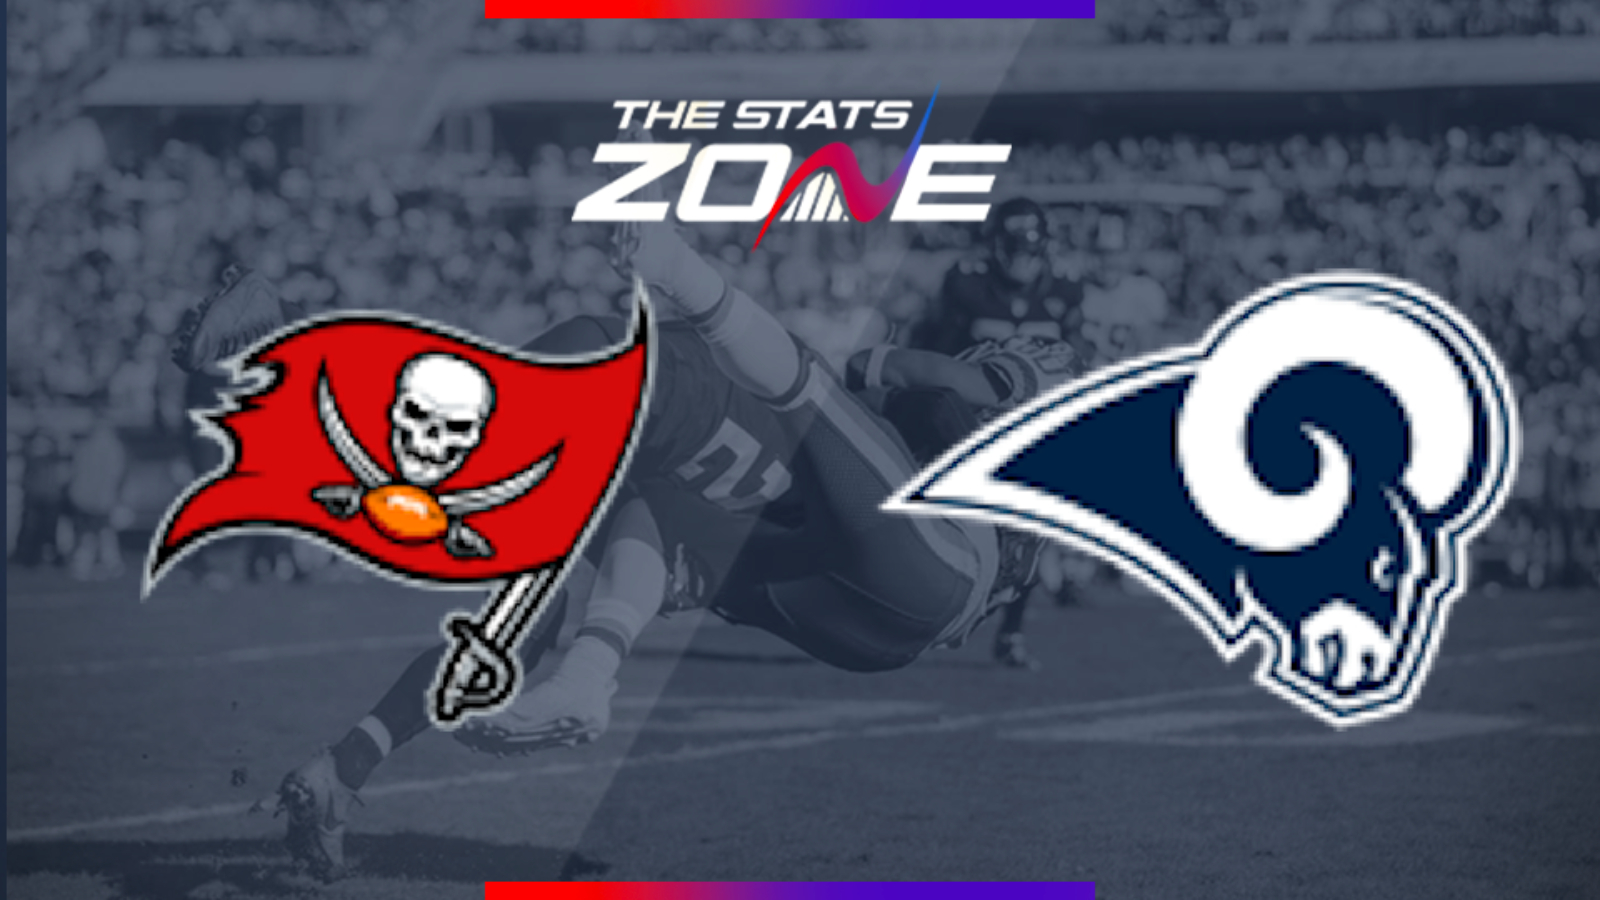 2019 nfl tampa bay buccaneers los angeles rams preview prediction the stats zone 2019 nfl tampa bay buccaneers los